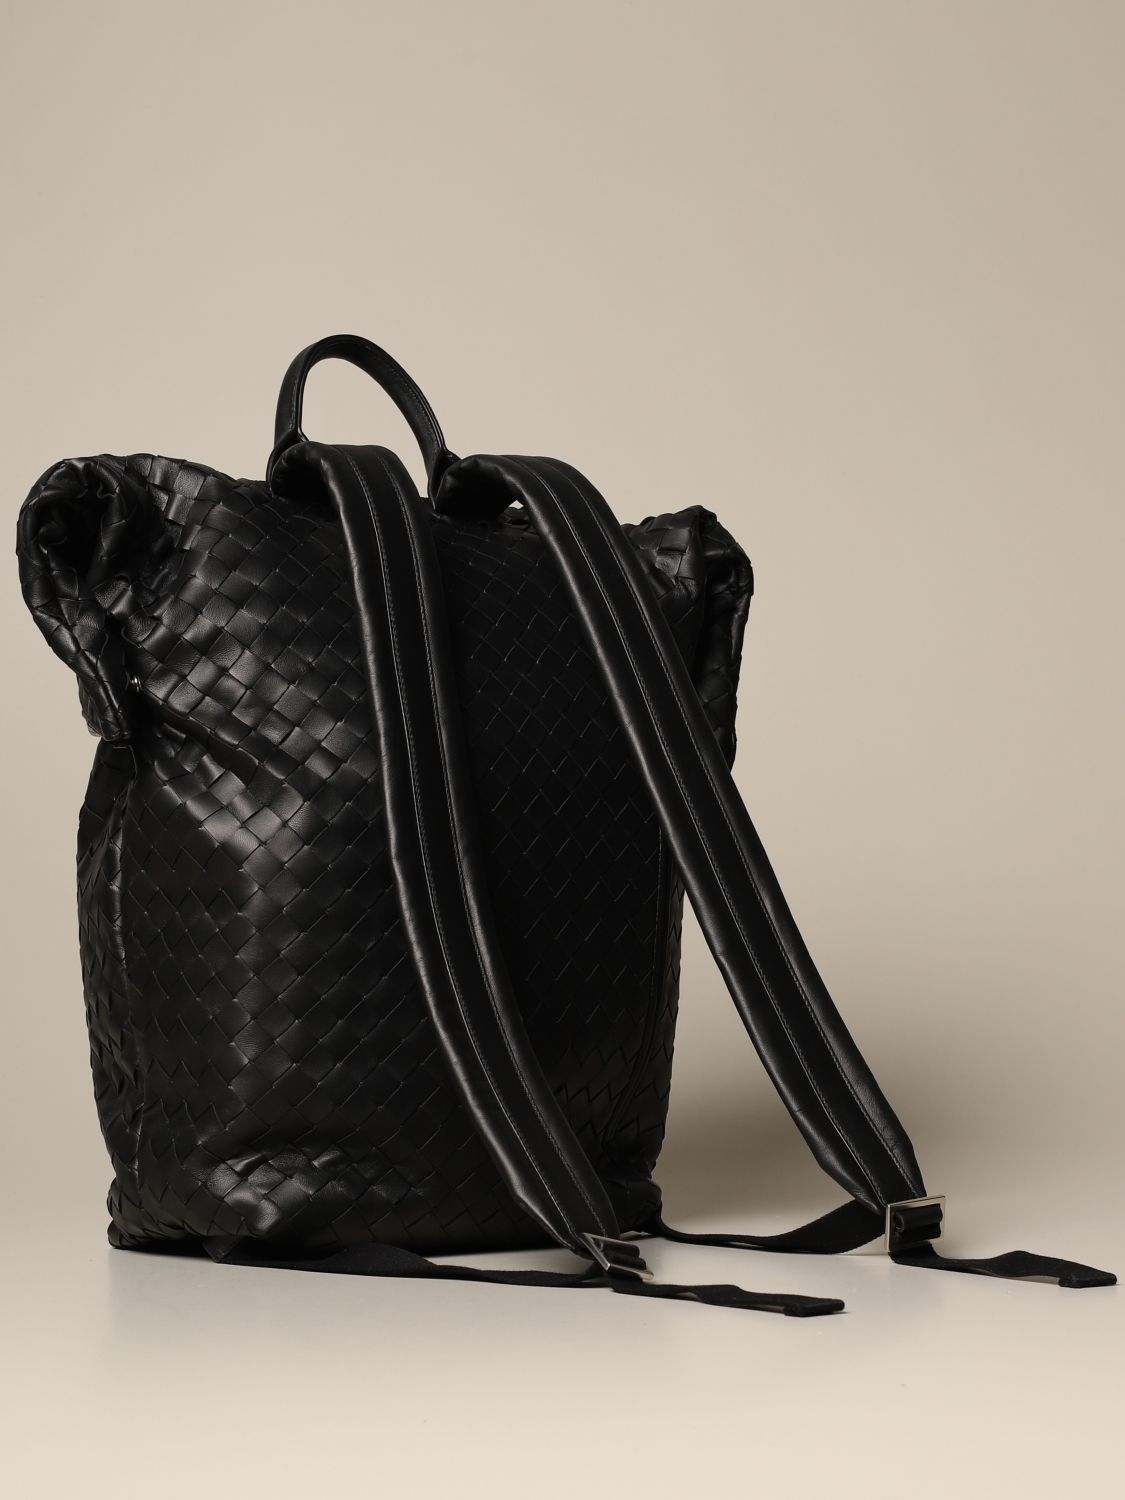 Backpack Bottega Veneta: Bottega Veneta backpack in woven leather black 2